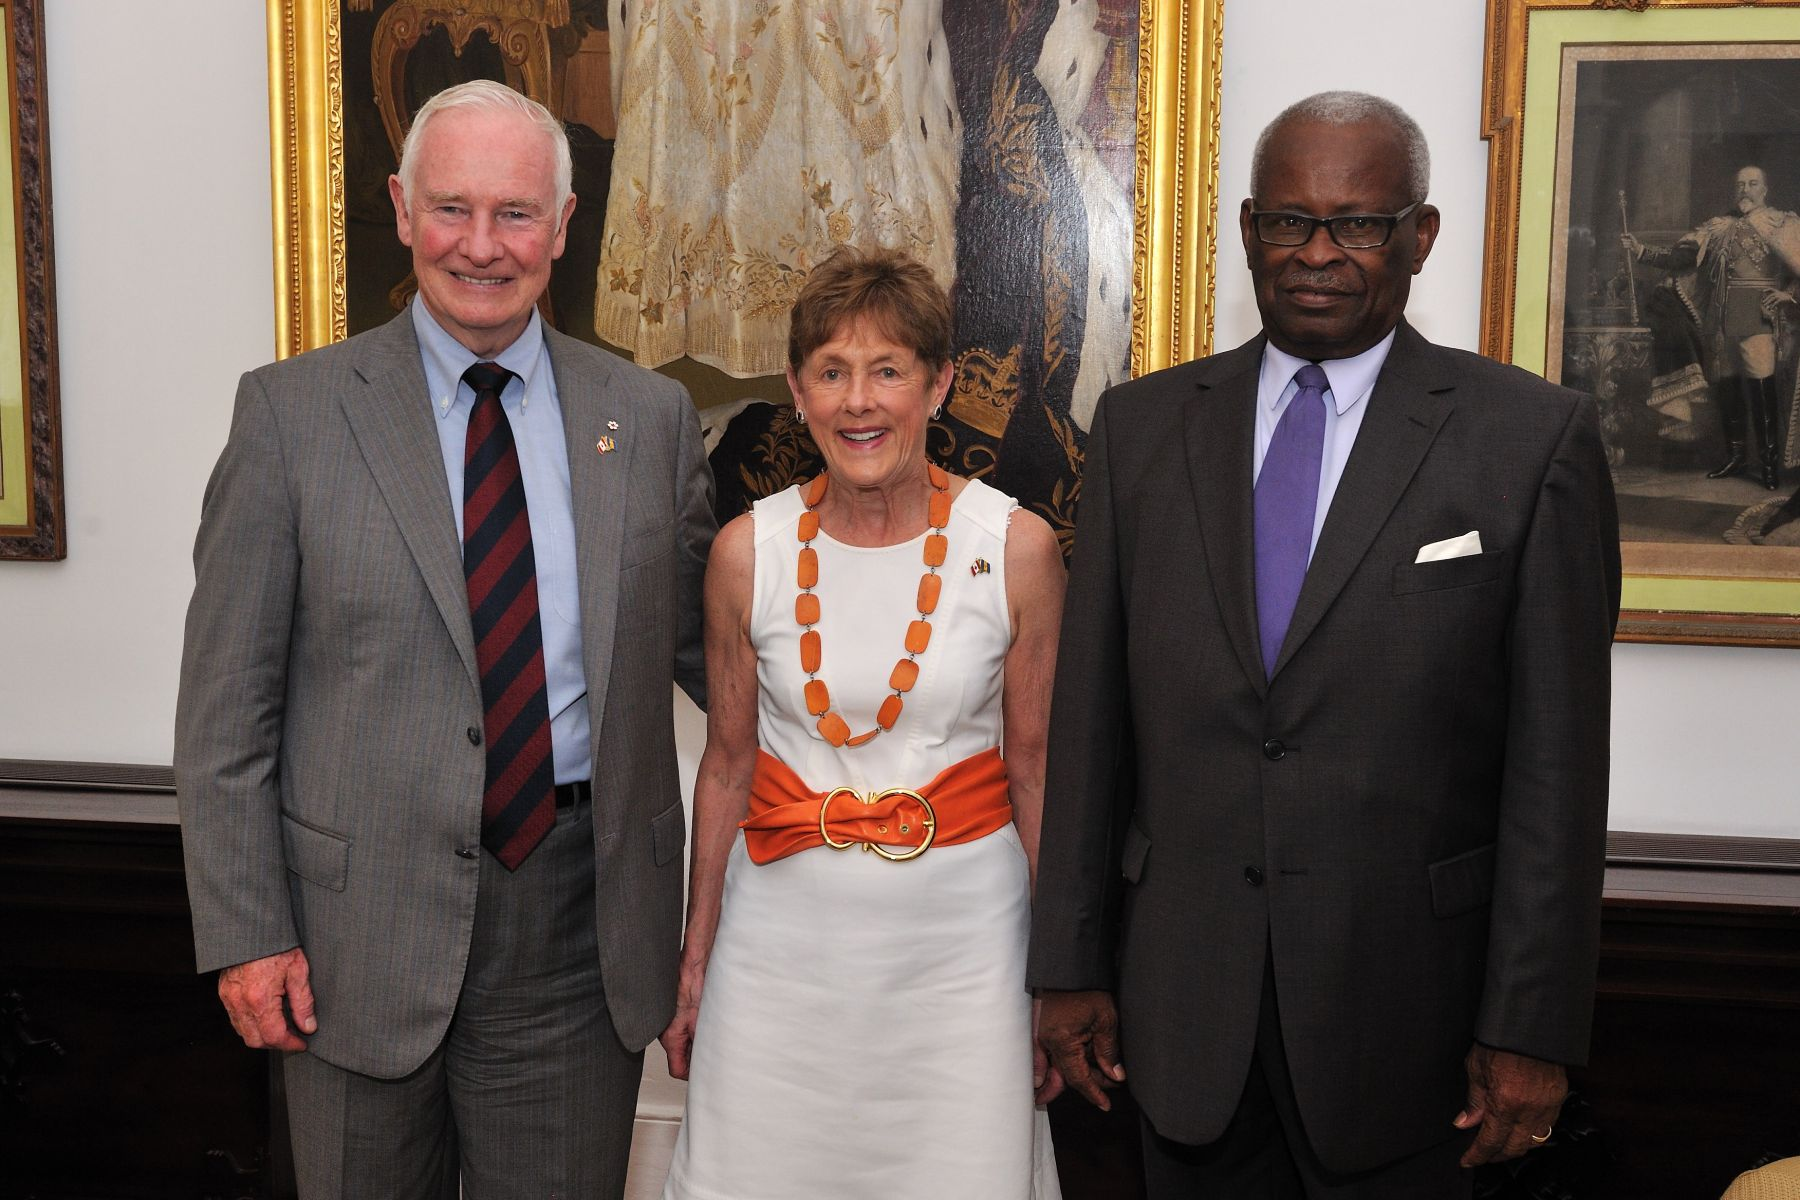 Their Excellencies and selected members of the Canadian delegation met with the Honourable Elliott Belgrave, Acting Governor-General of Barbados.